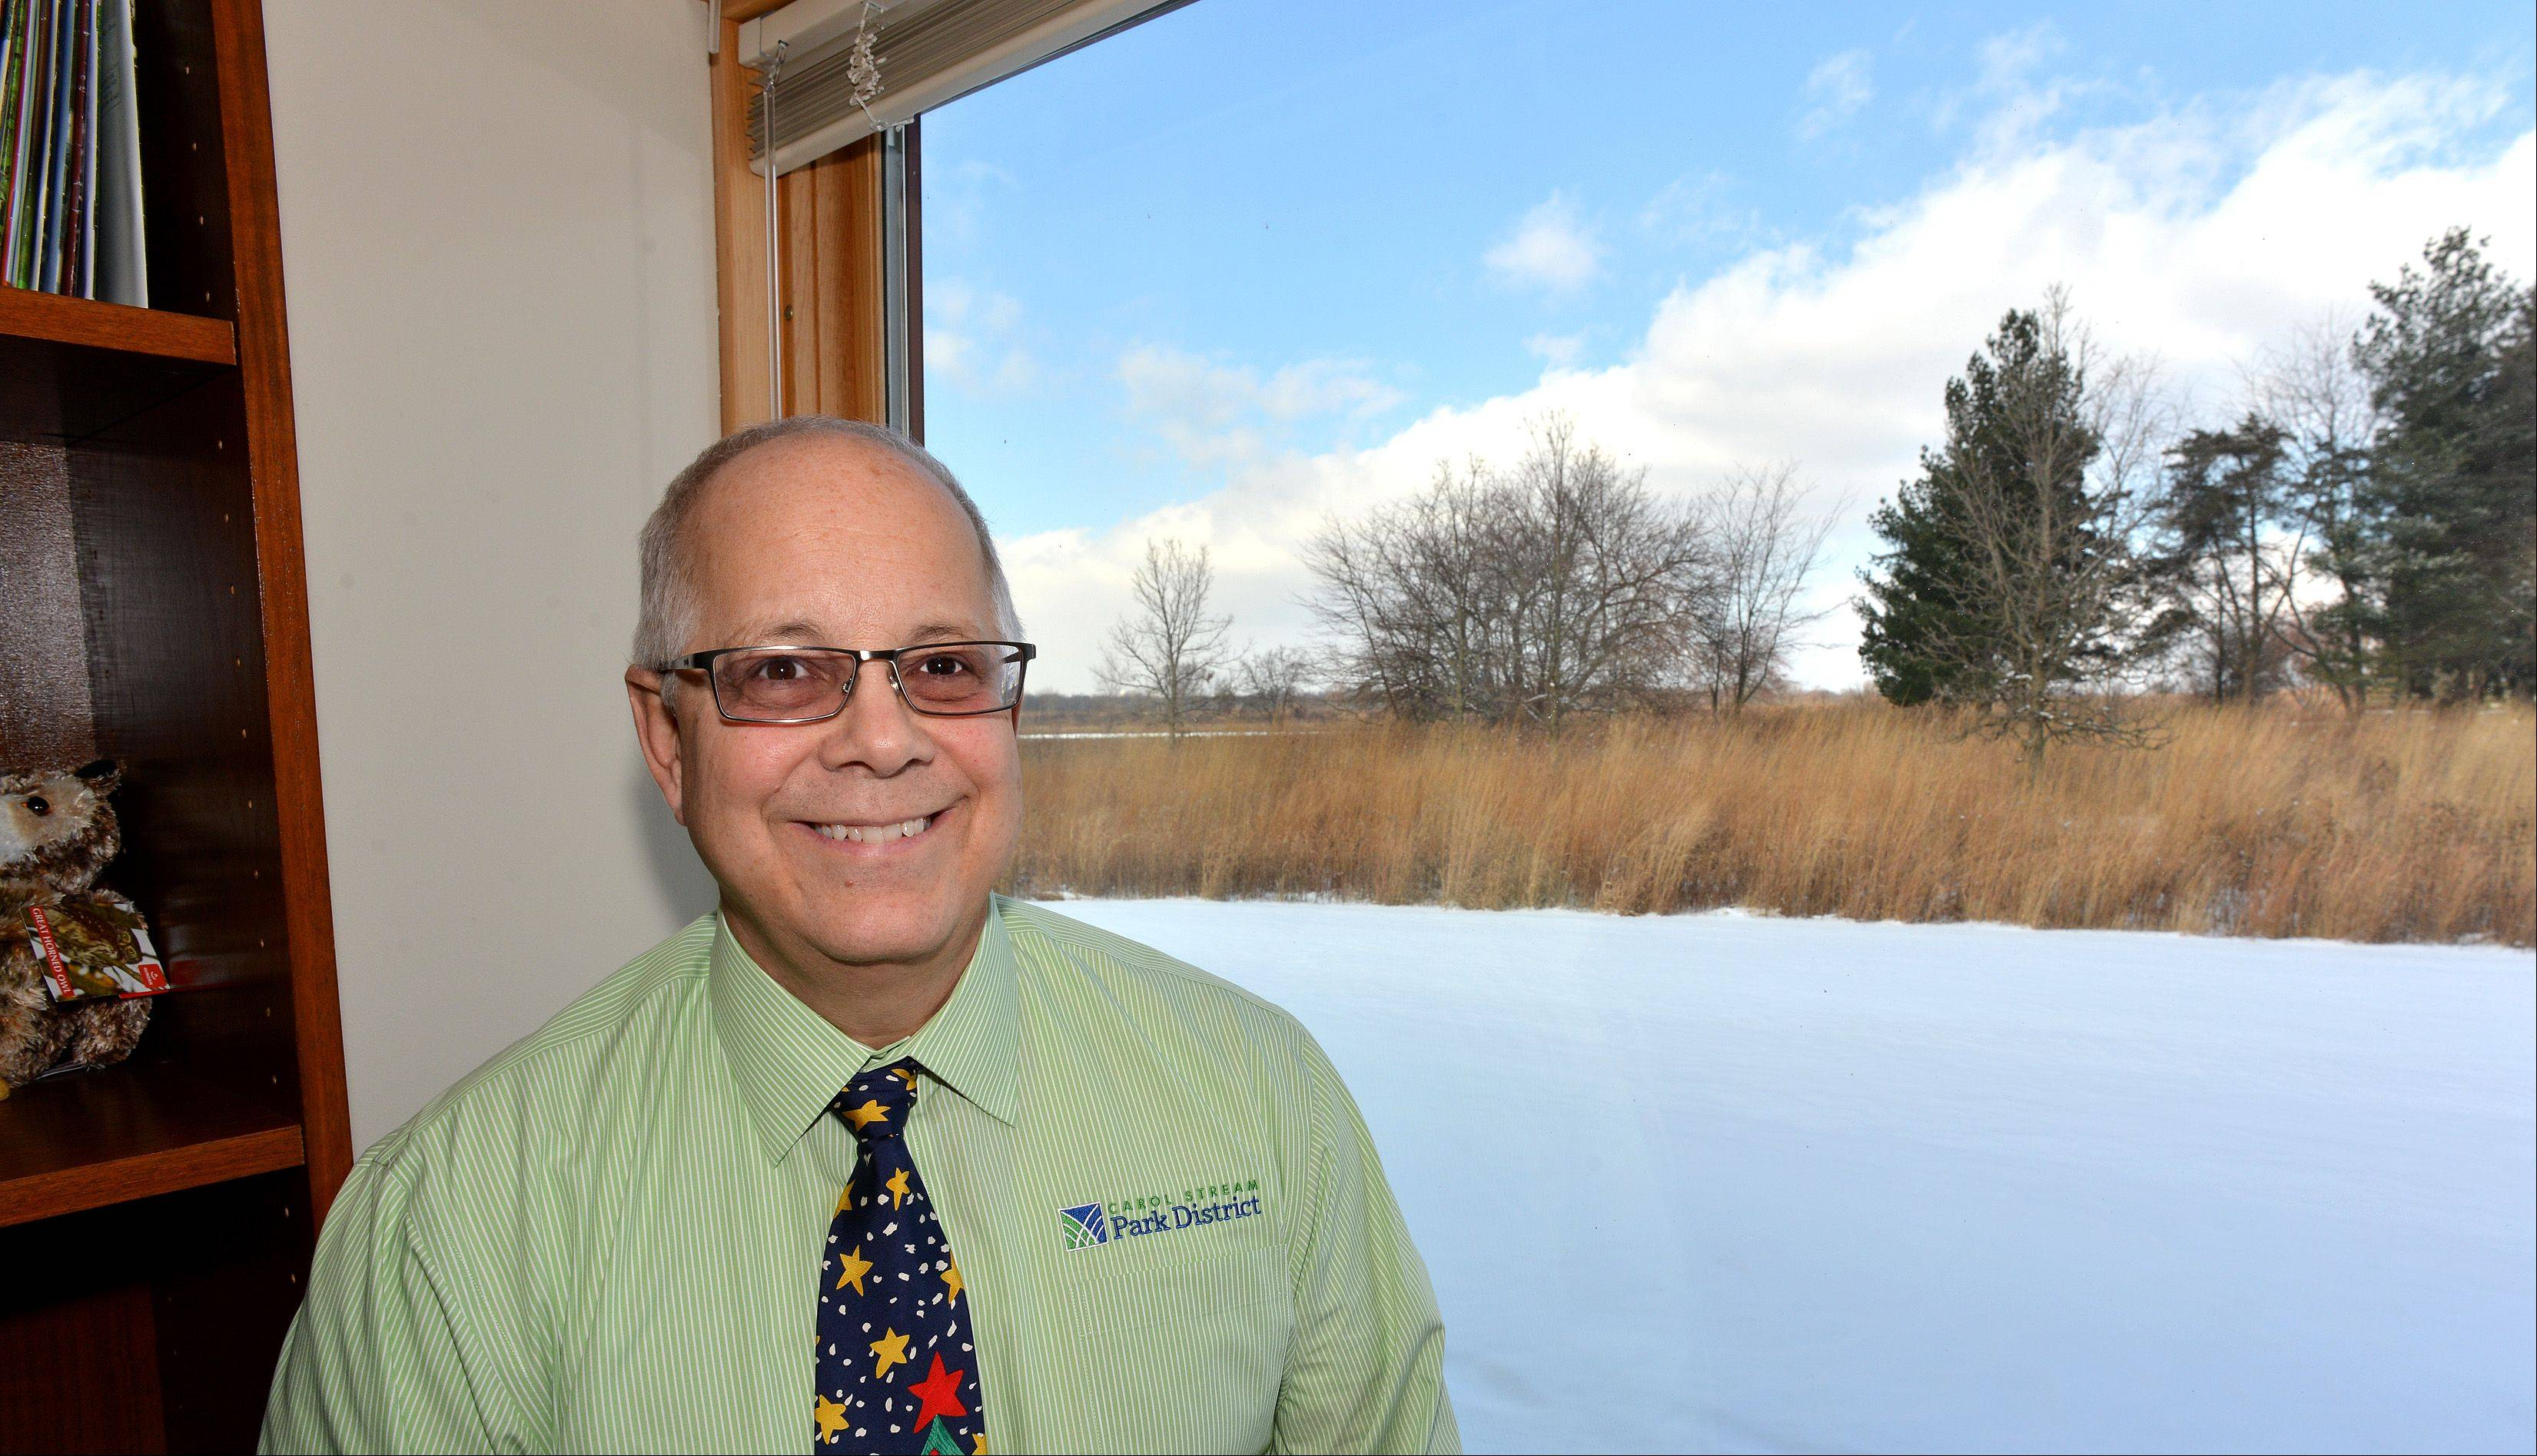 New DuPage forest preserve leader looks to shape district's direction